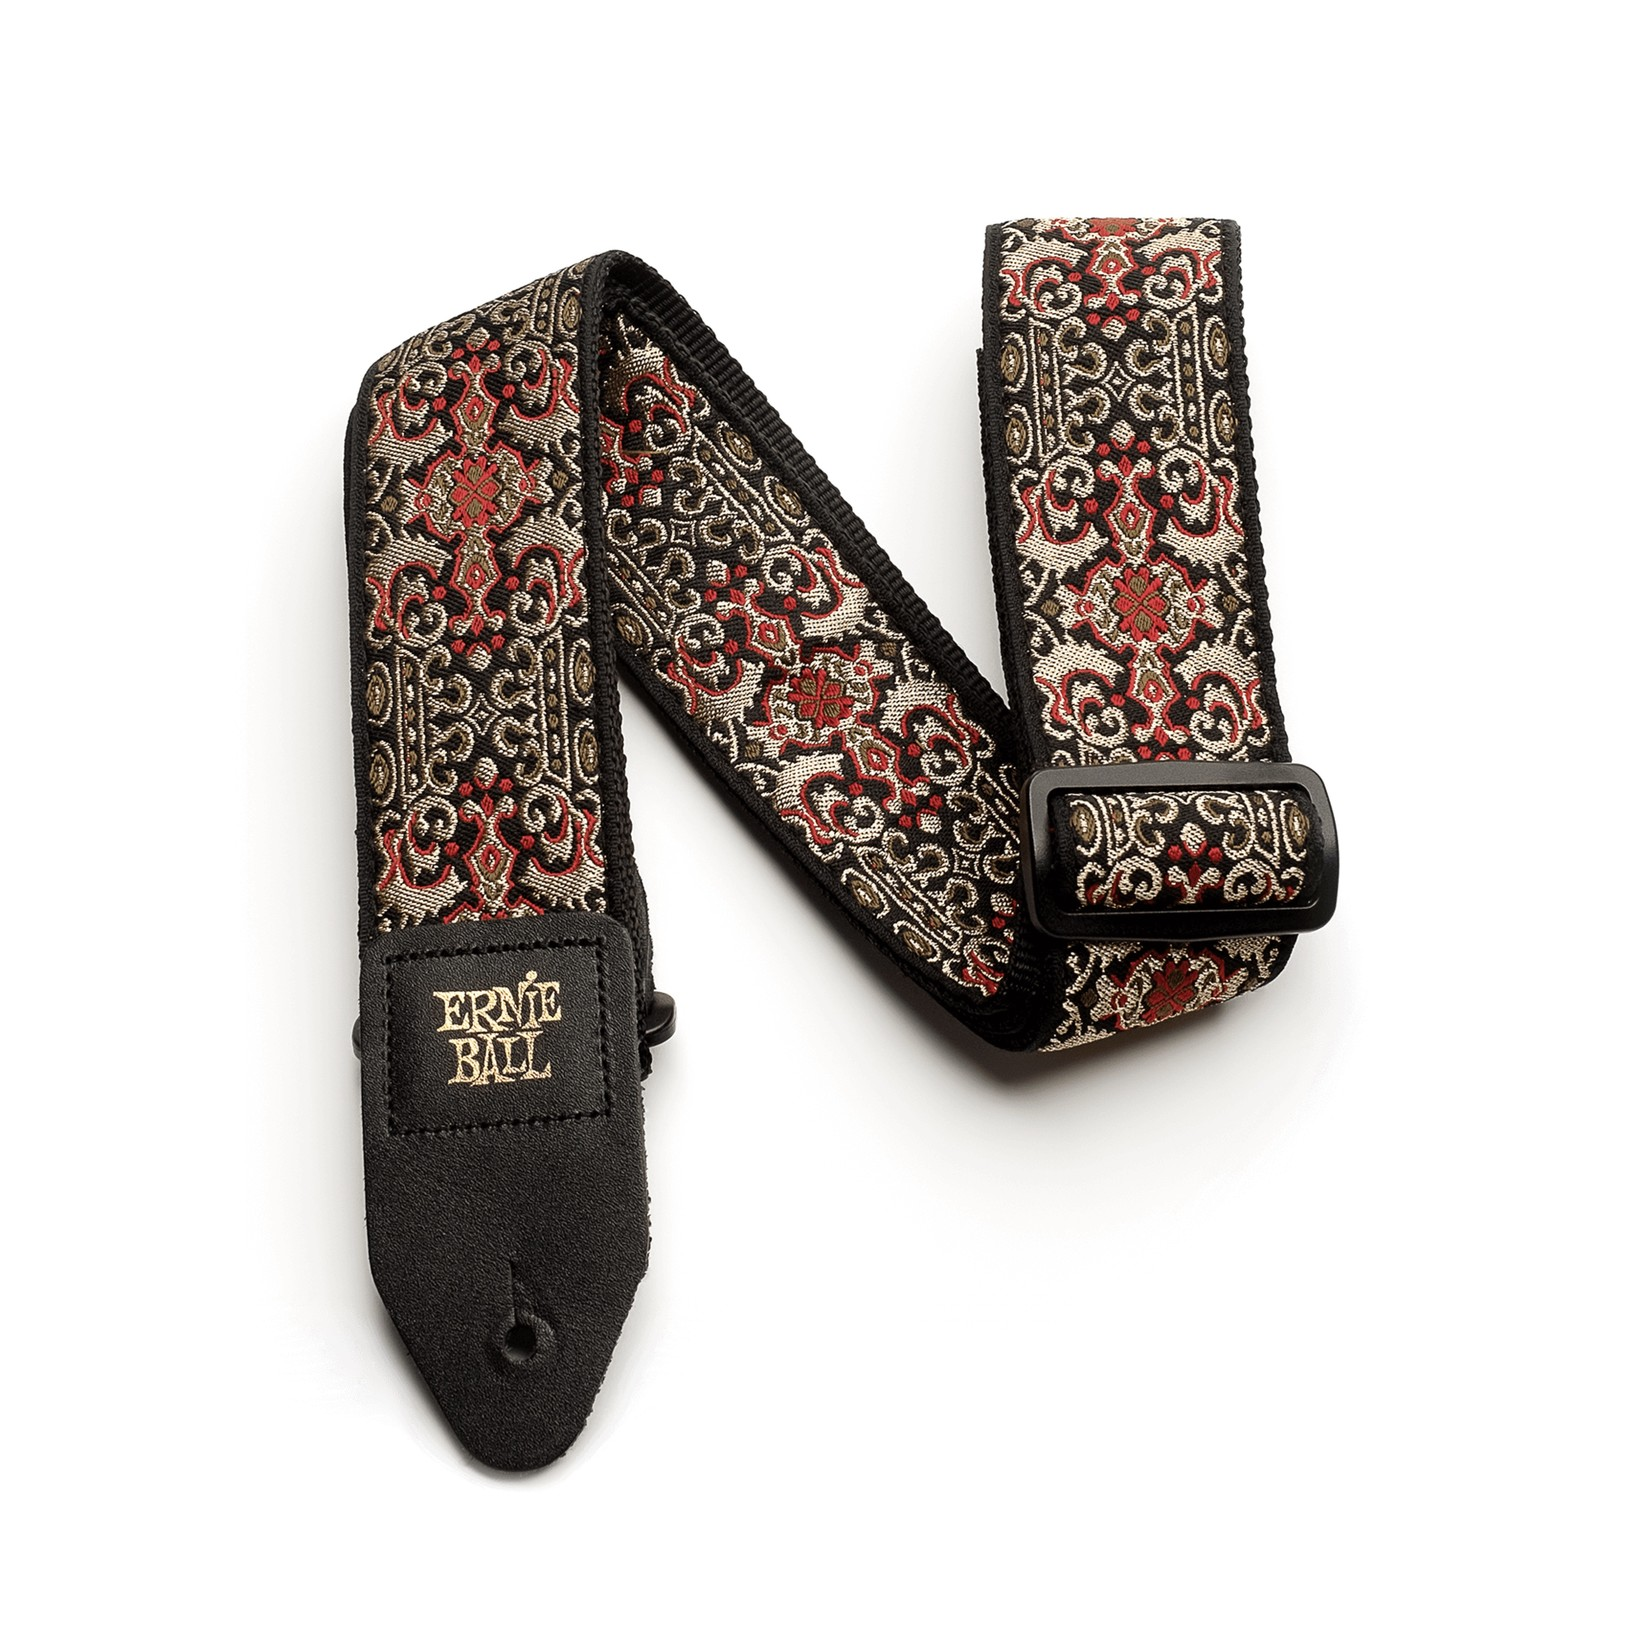 Ernie Ball Ernie Ball Persian Gold Jacquard Guitar Strap